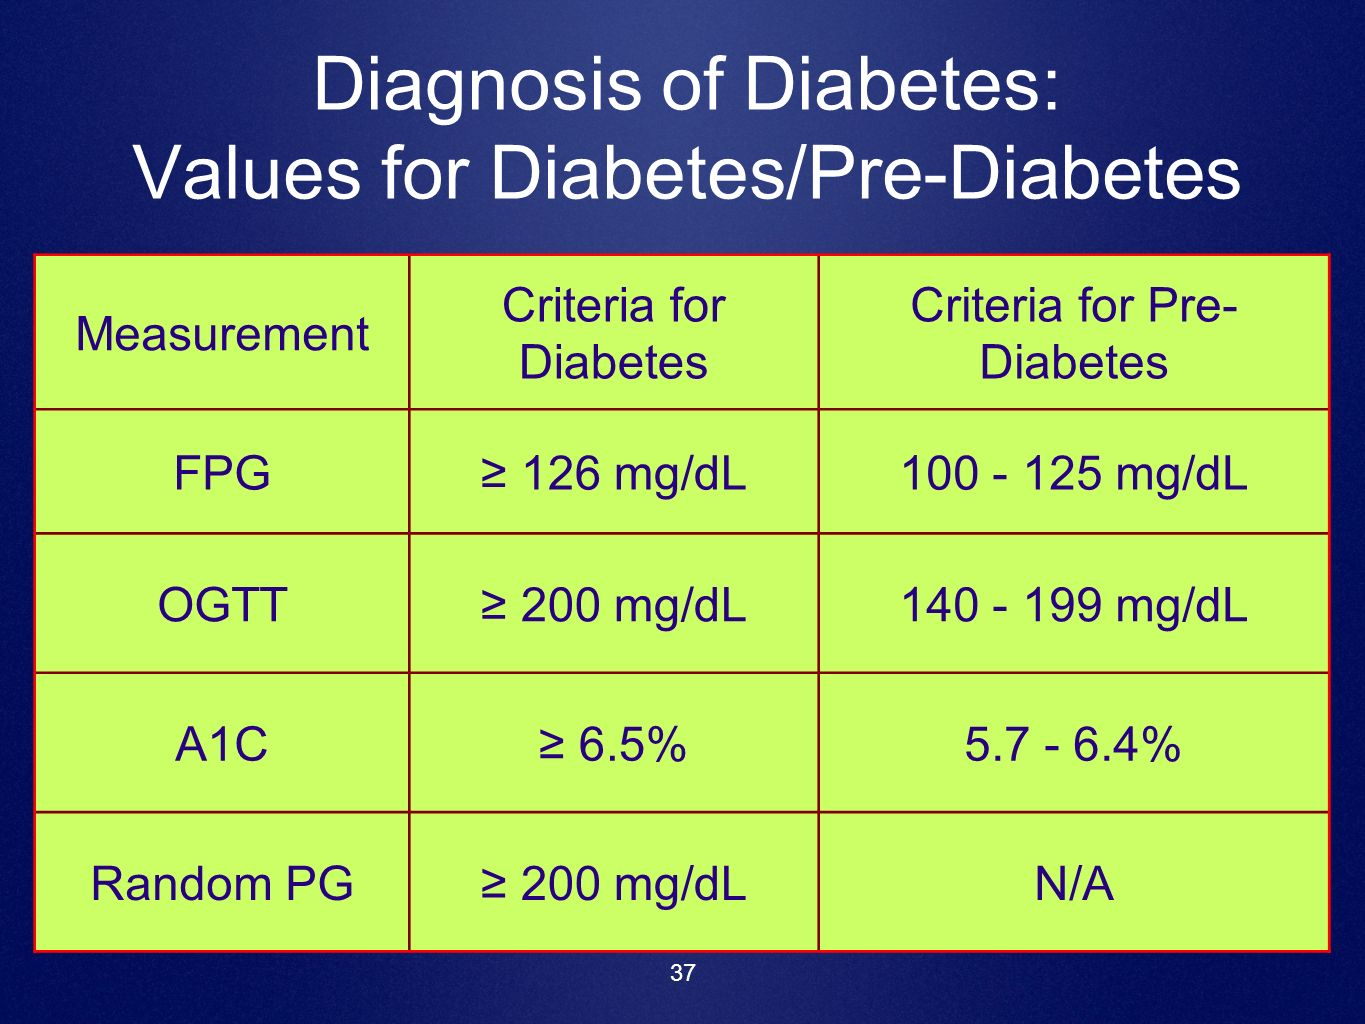 37 Diagnosis of Diabetes: Values for Diabetes/Pre-Diabetes Measurement Criteria for Diabetes Criteria for Pre- Diabetes FPG 126 mg/dL100 - 125 mg/dL O